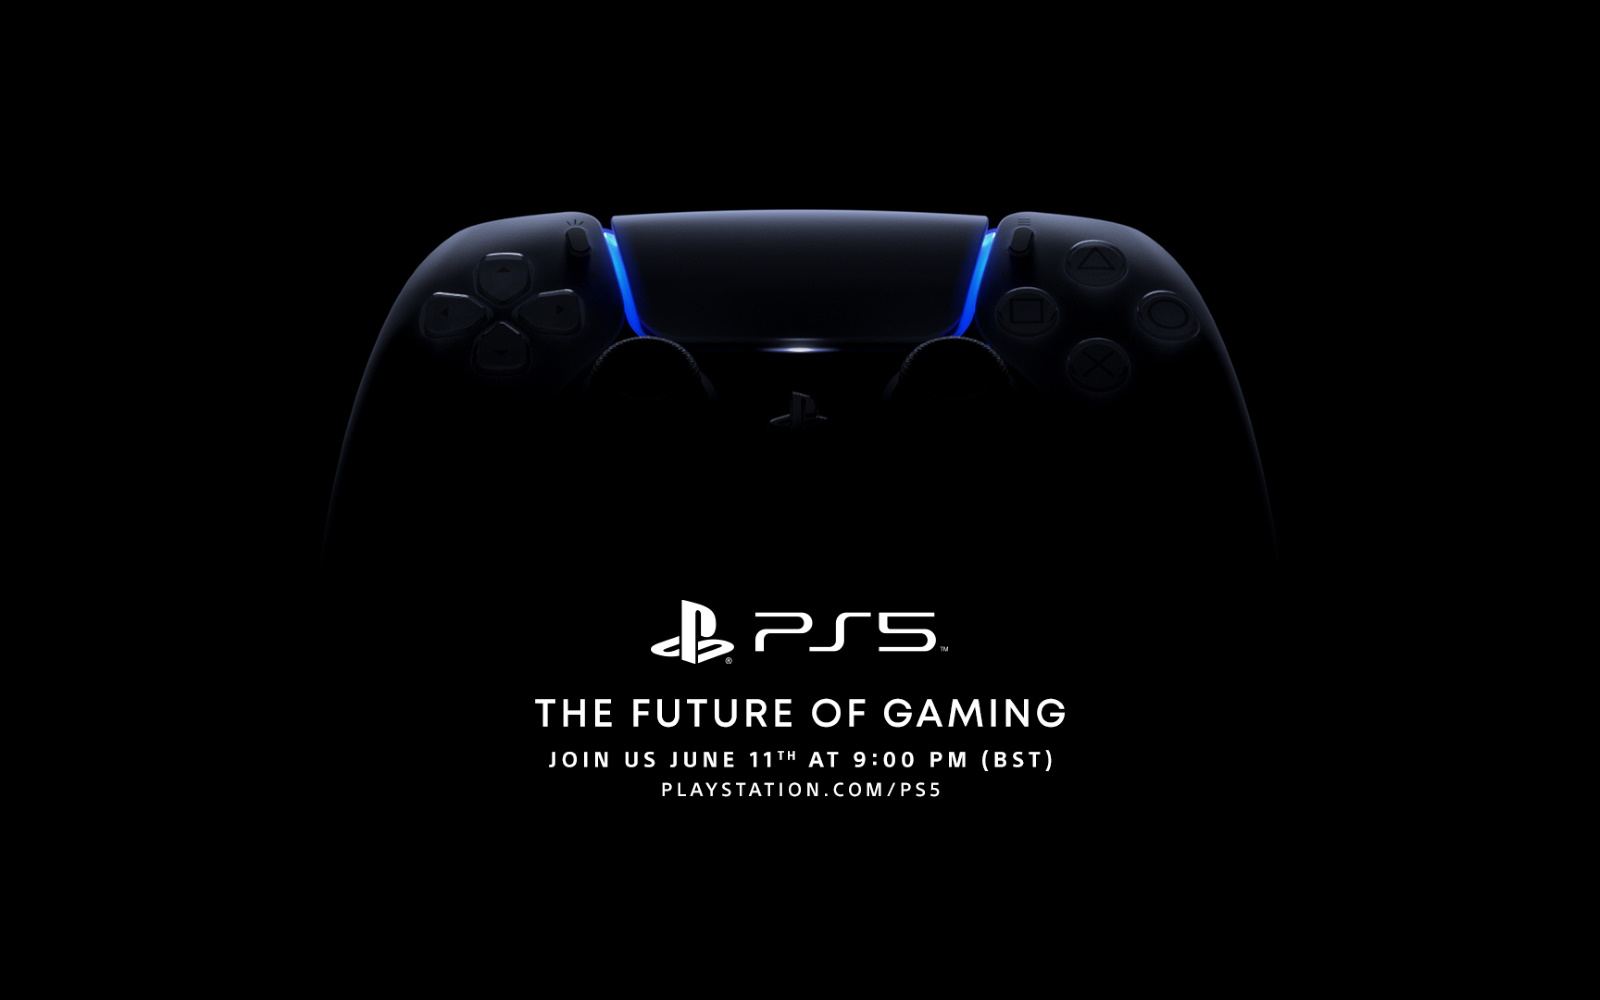 [Update] PS5 Gaming Event Coming This Week. What Could We See?